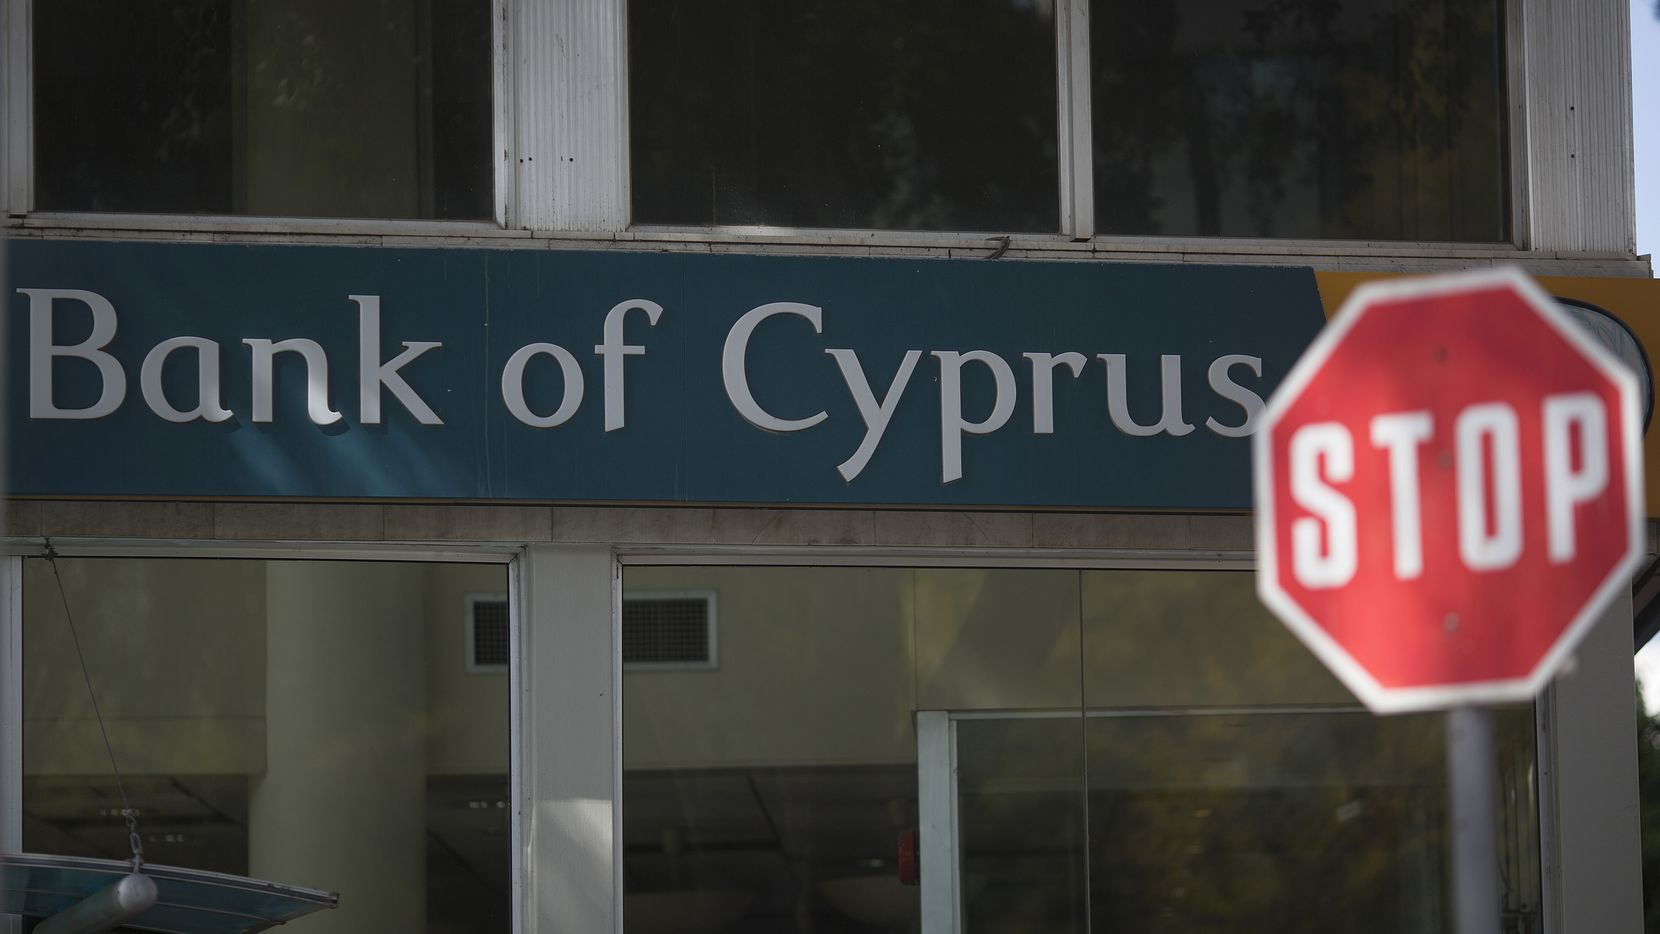 """A road traffic """"Stop"""" sign stands outside a Bank of Cyprus Plc branch in Limassol, Cyprus, on Wednesday, March 27, 2013. The ECB said on March 25 it won't stop the Cypriot central bank from providing the island's banking sector with emergency funding. Photographer: Simon Dawson/Bloomberg via Getty Images"""